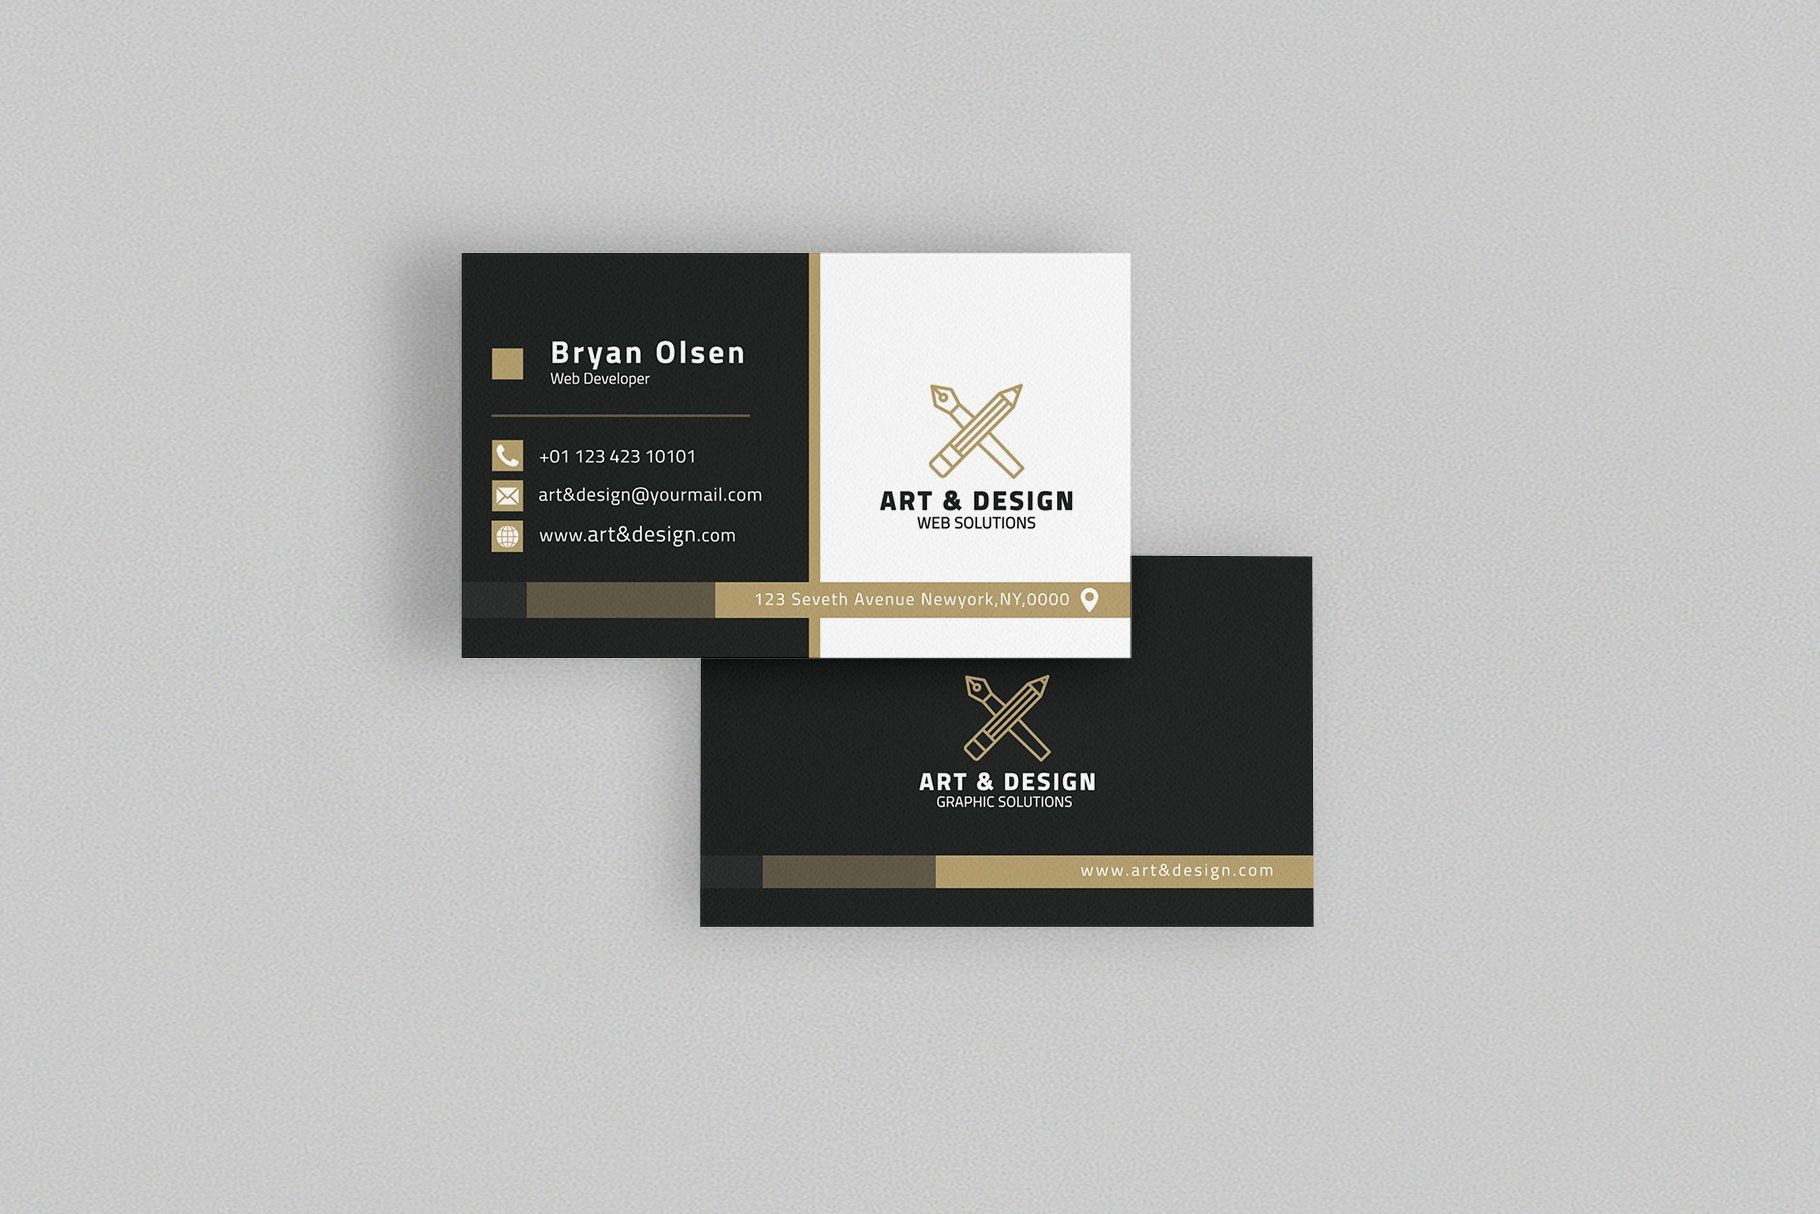 100 Business Card Template Bundle In 2021 Business Card Layout Design Business Card Design Business Card Template